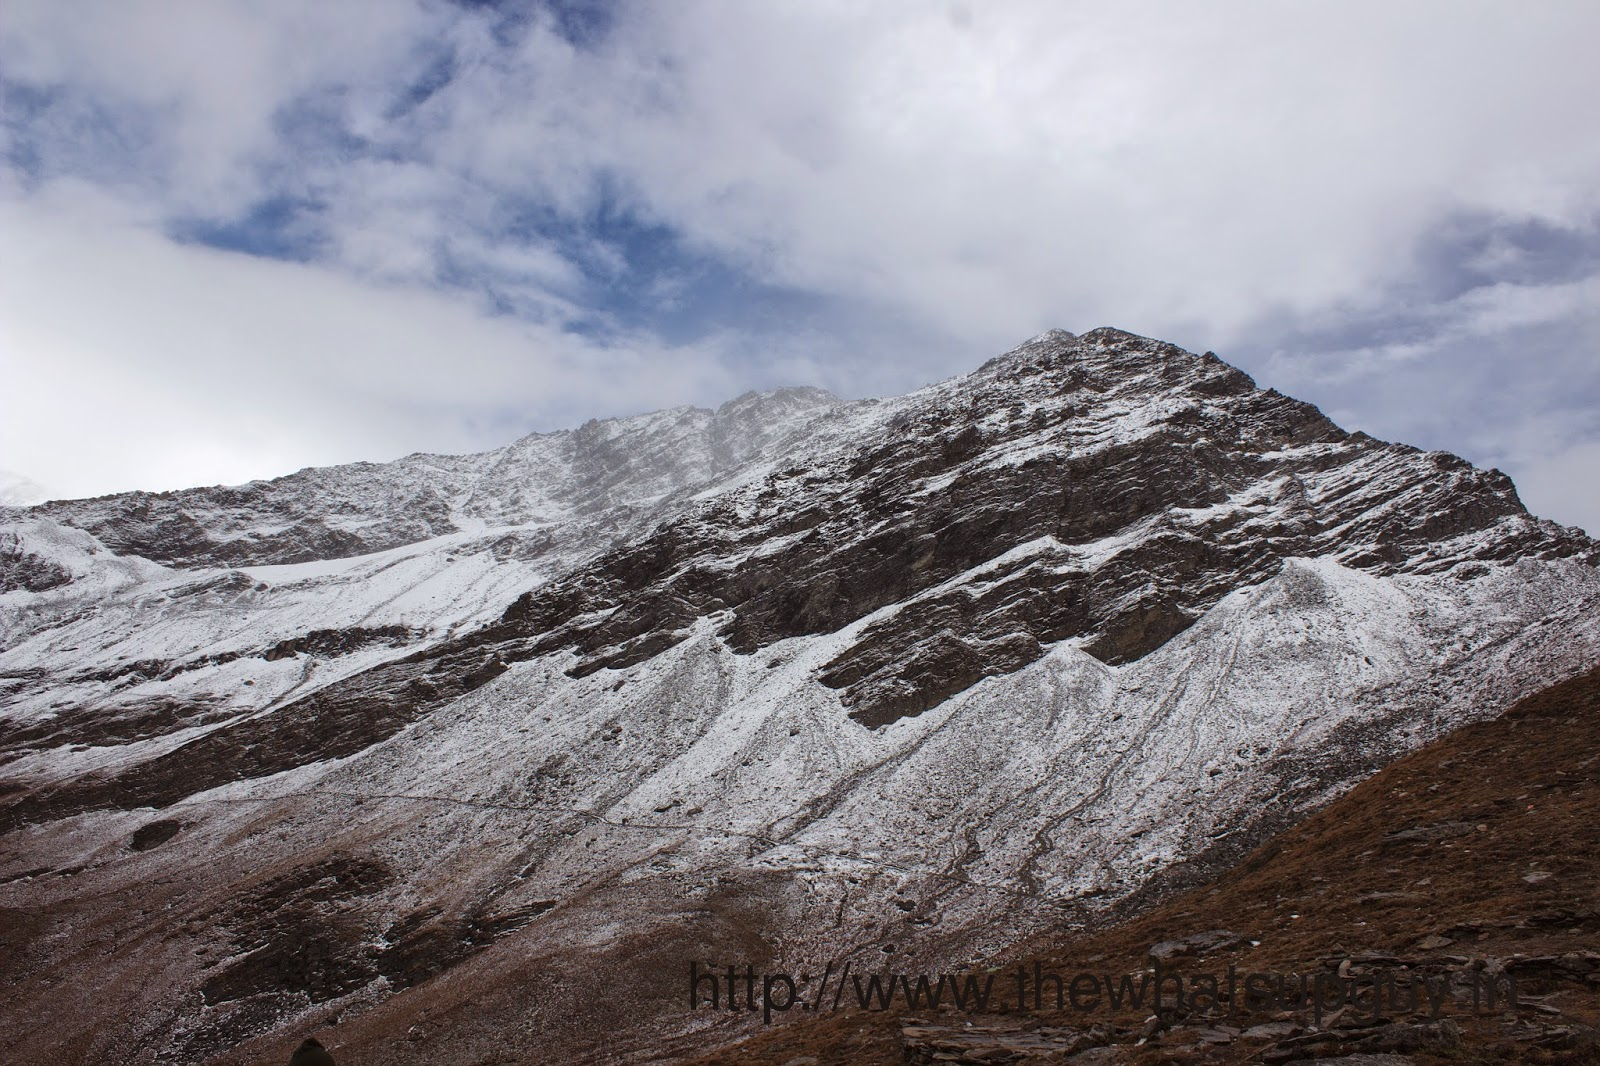 Snow Mountain Roopkund Trek With India Hikes Day 4